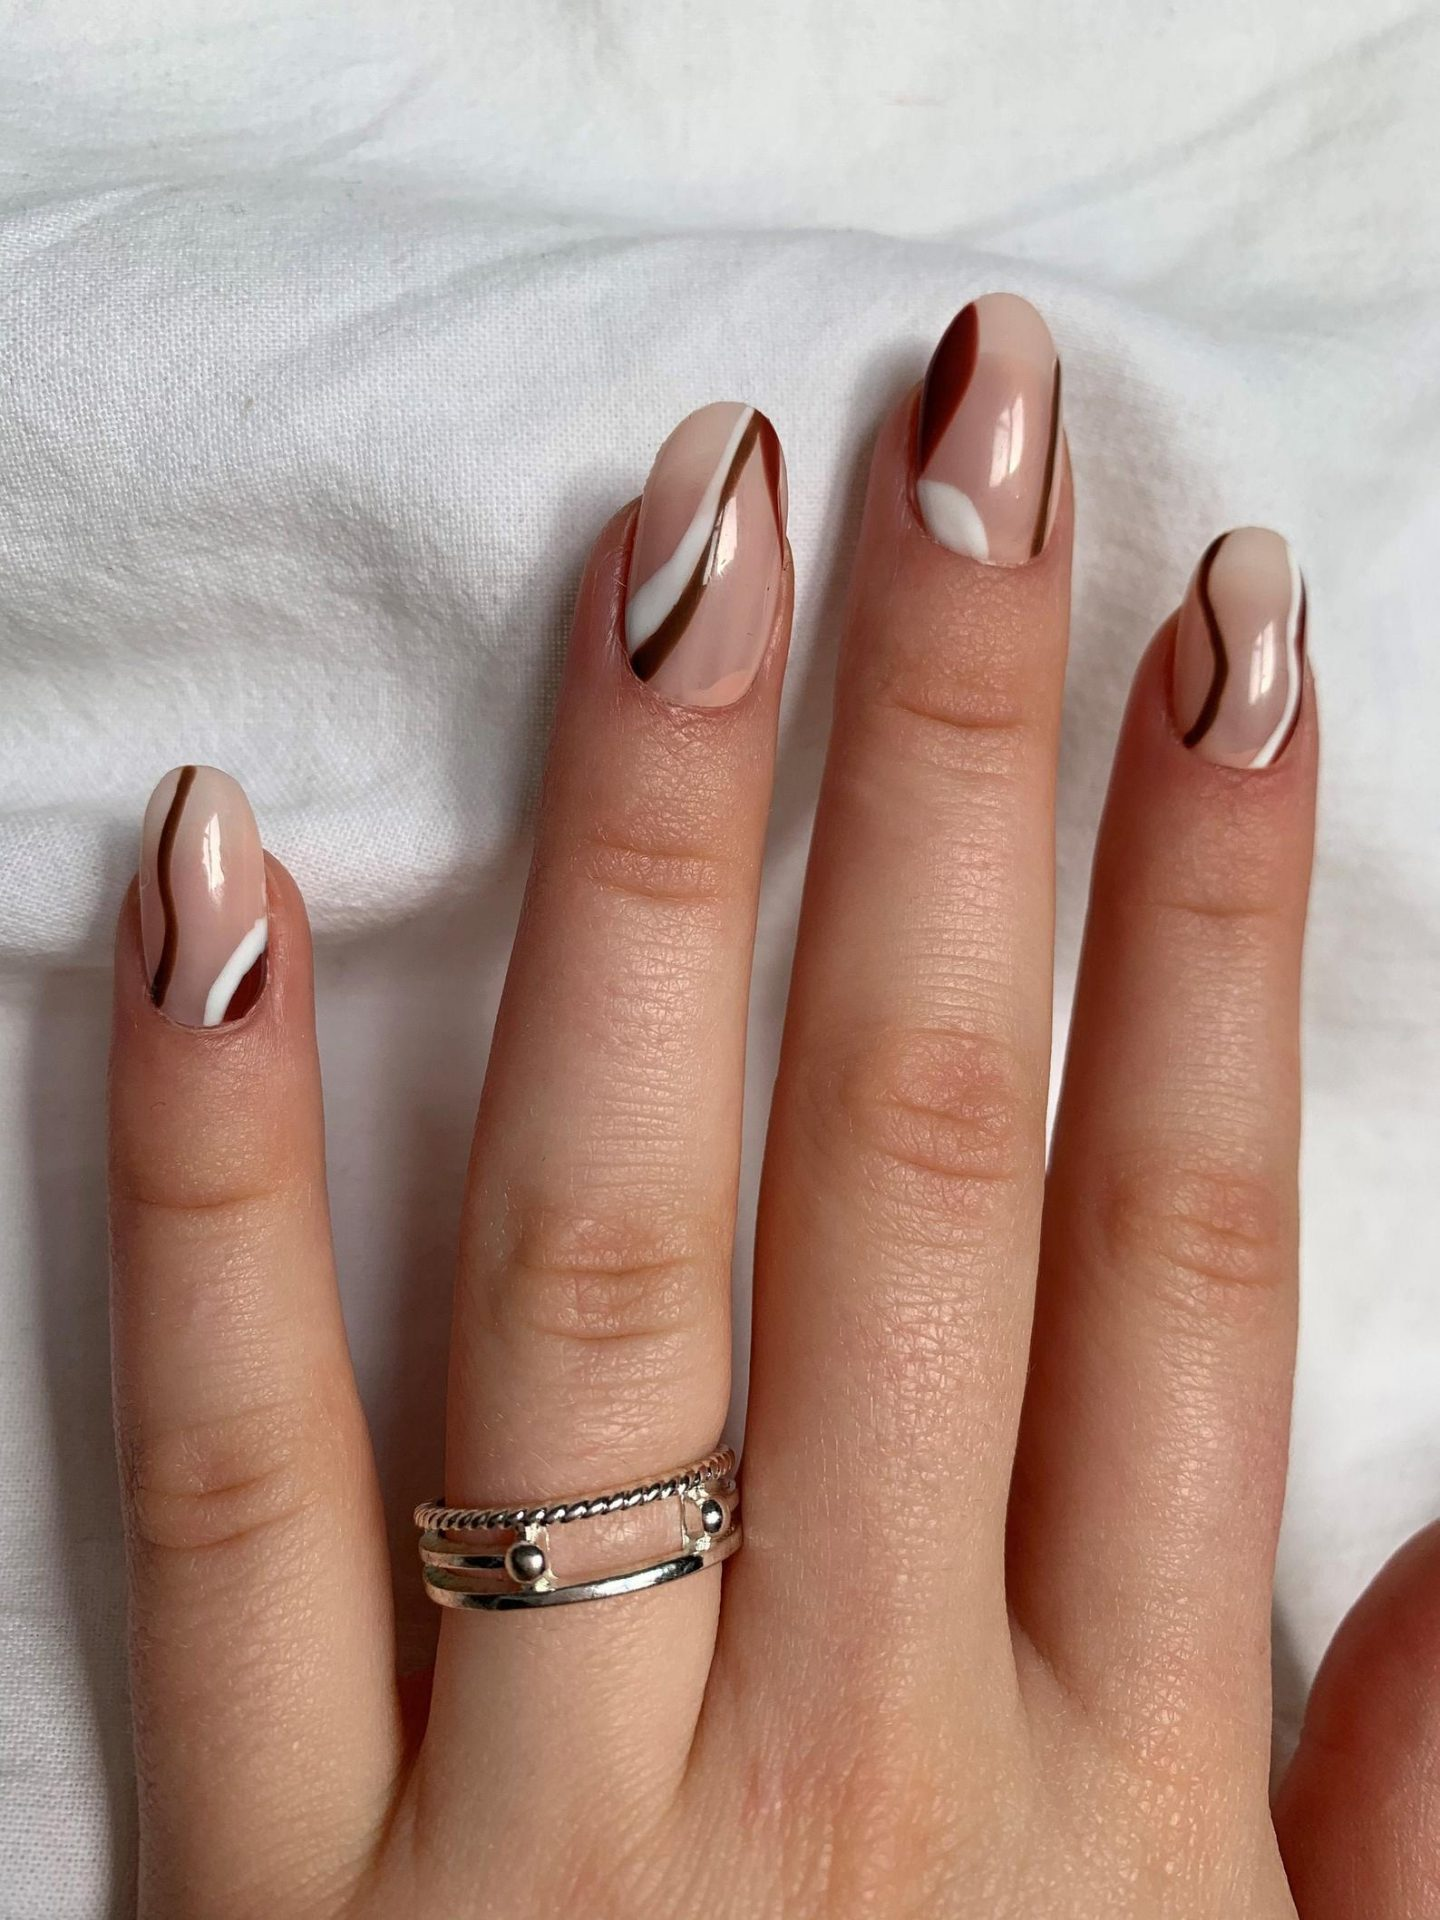 Abstract nails with white and brown swirls and lines